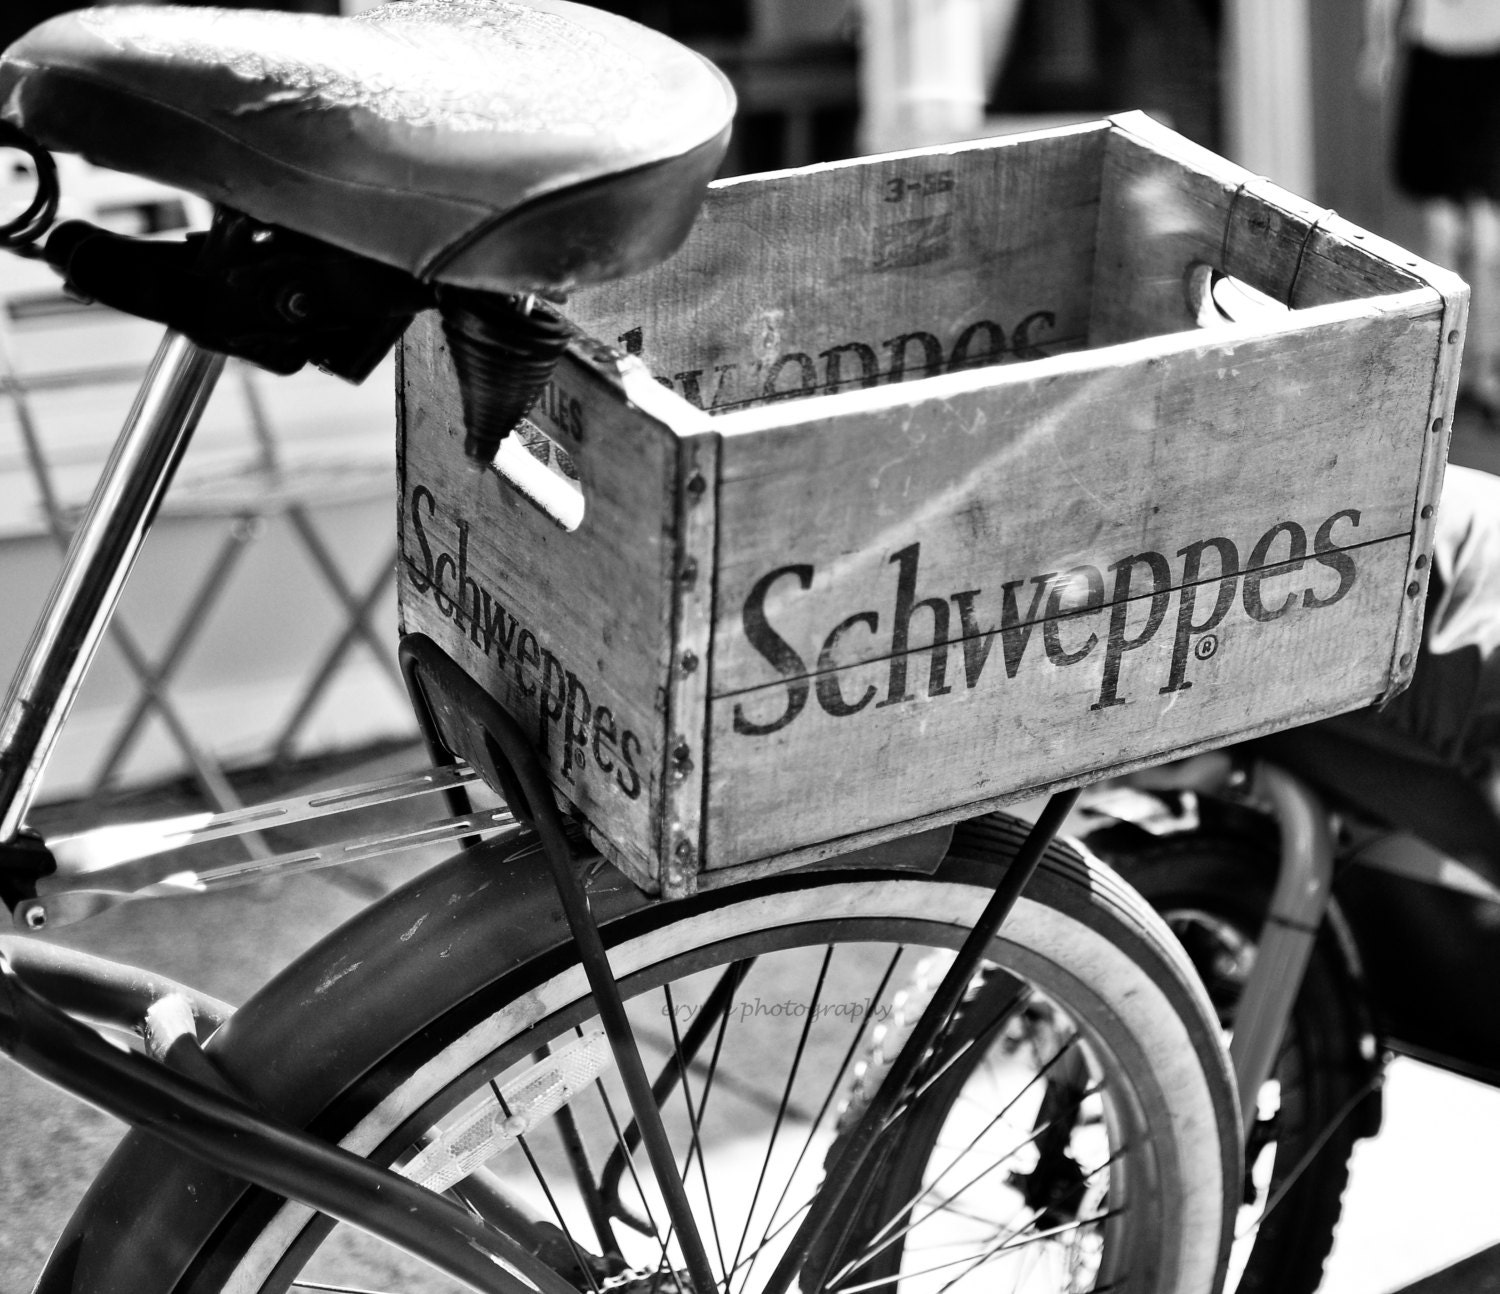 black and white bicycle schweppes box vintage photography